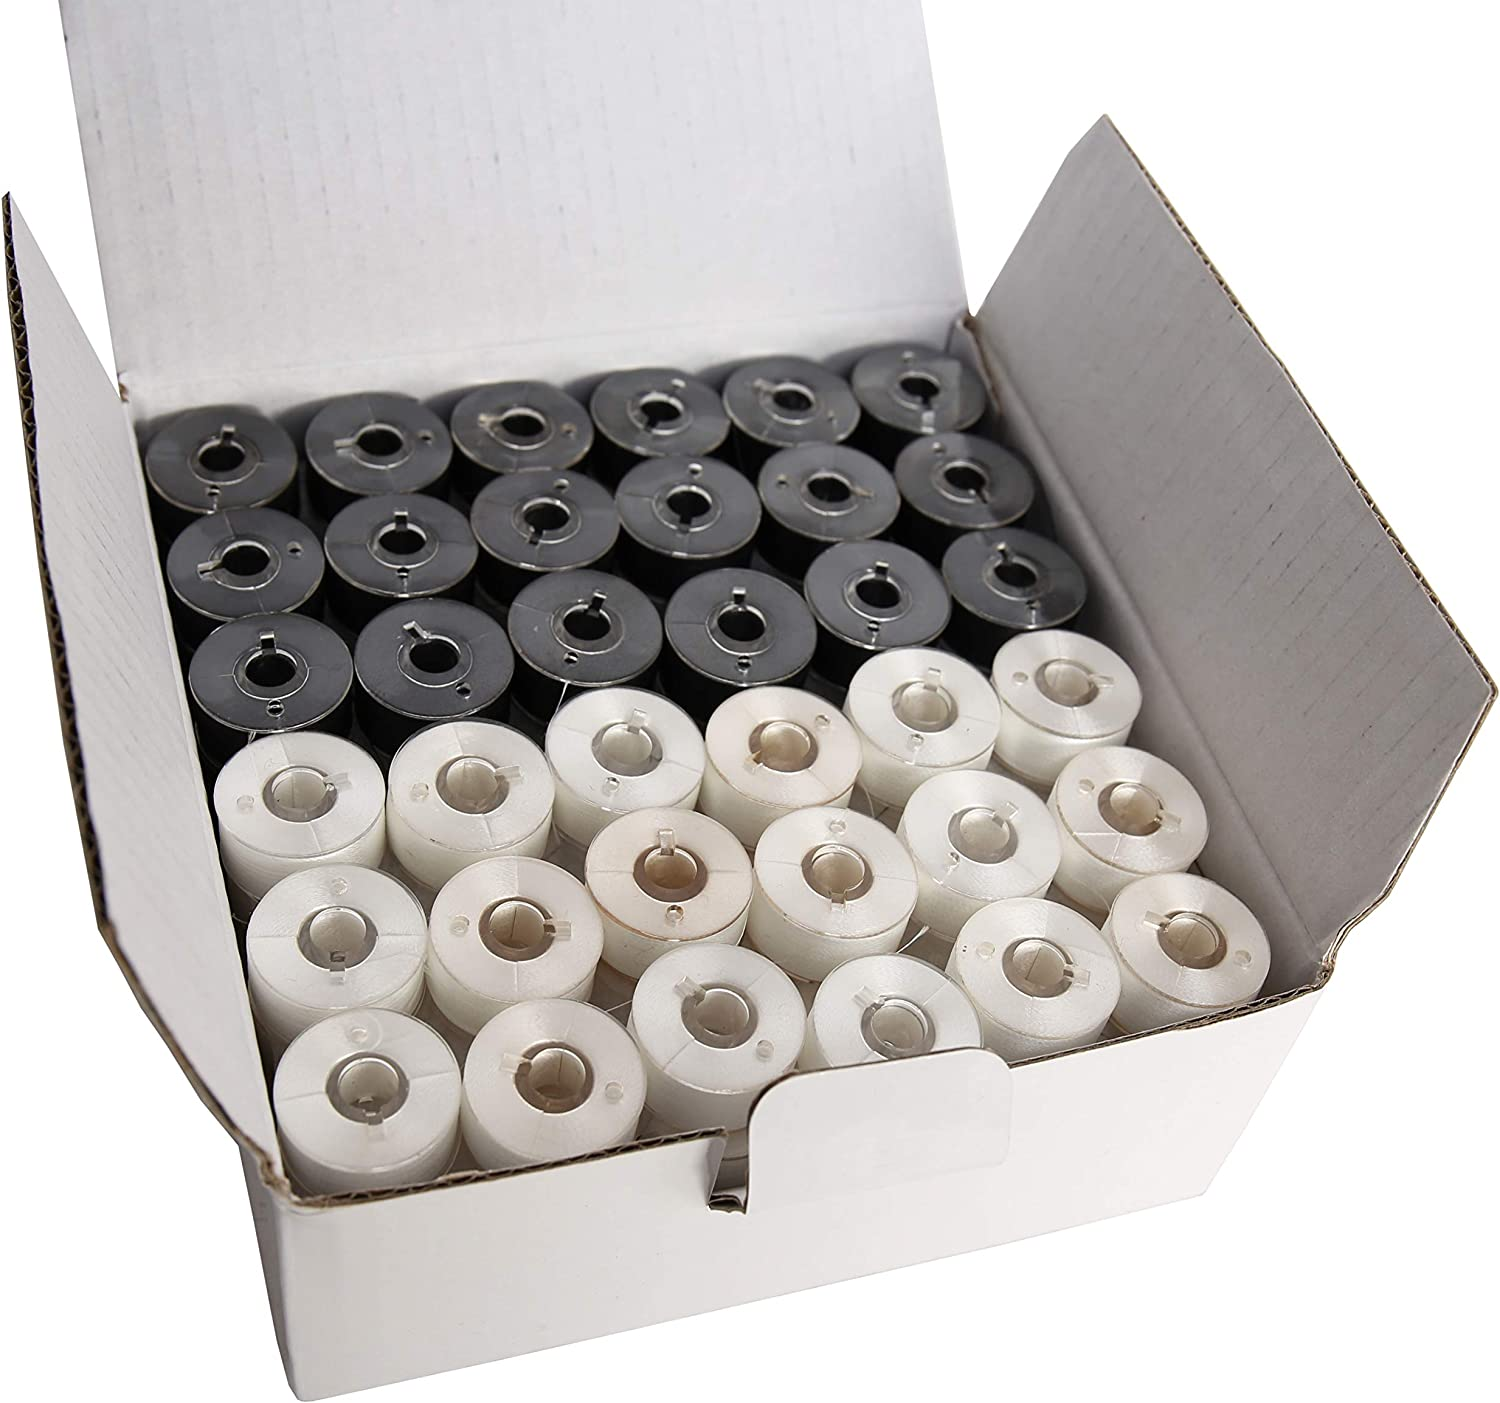 Simthread 144pcs Embroidery Pre-Wound Bobbins Thread Class 15 Type A Size SA156 Polyester White 60 wt Bernina Pfaff Ambition BabyLock Brother Embroidery and Sewing Machines Plastic Side